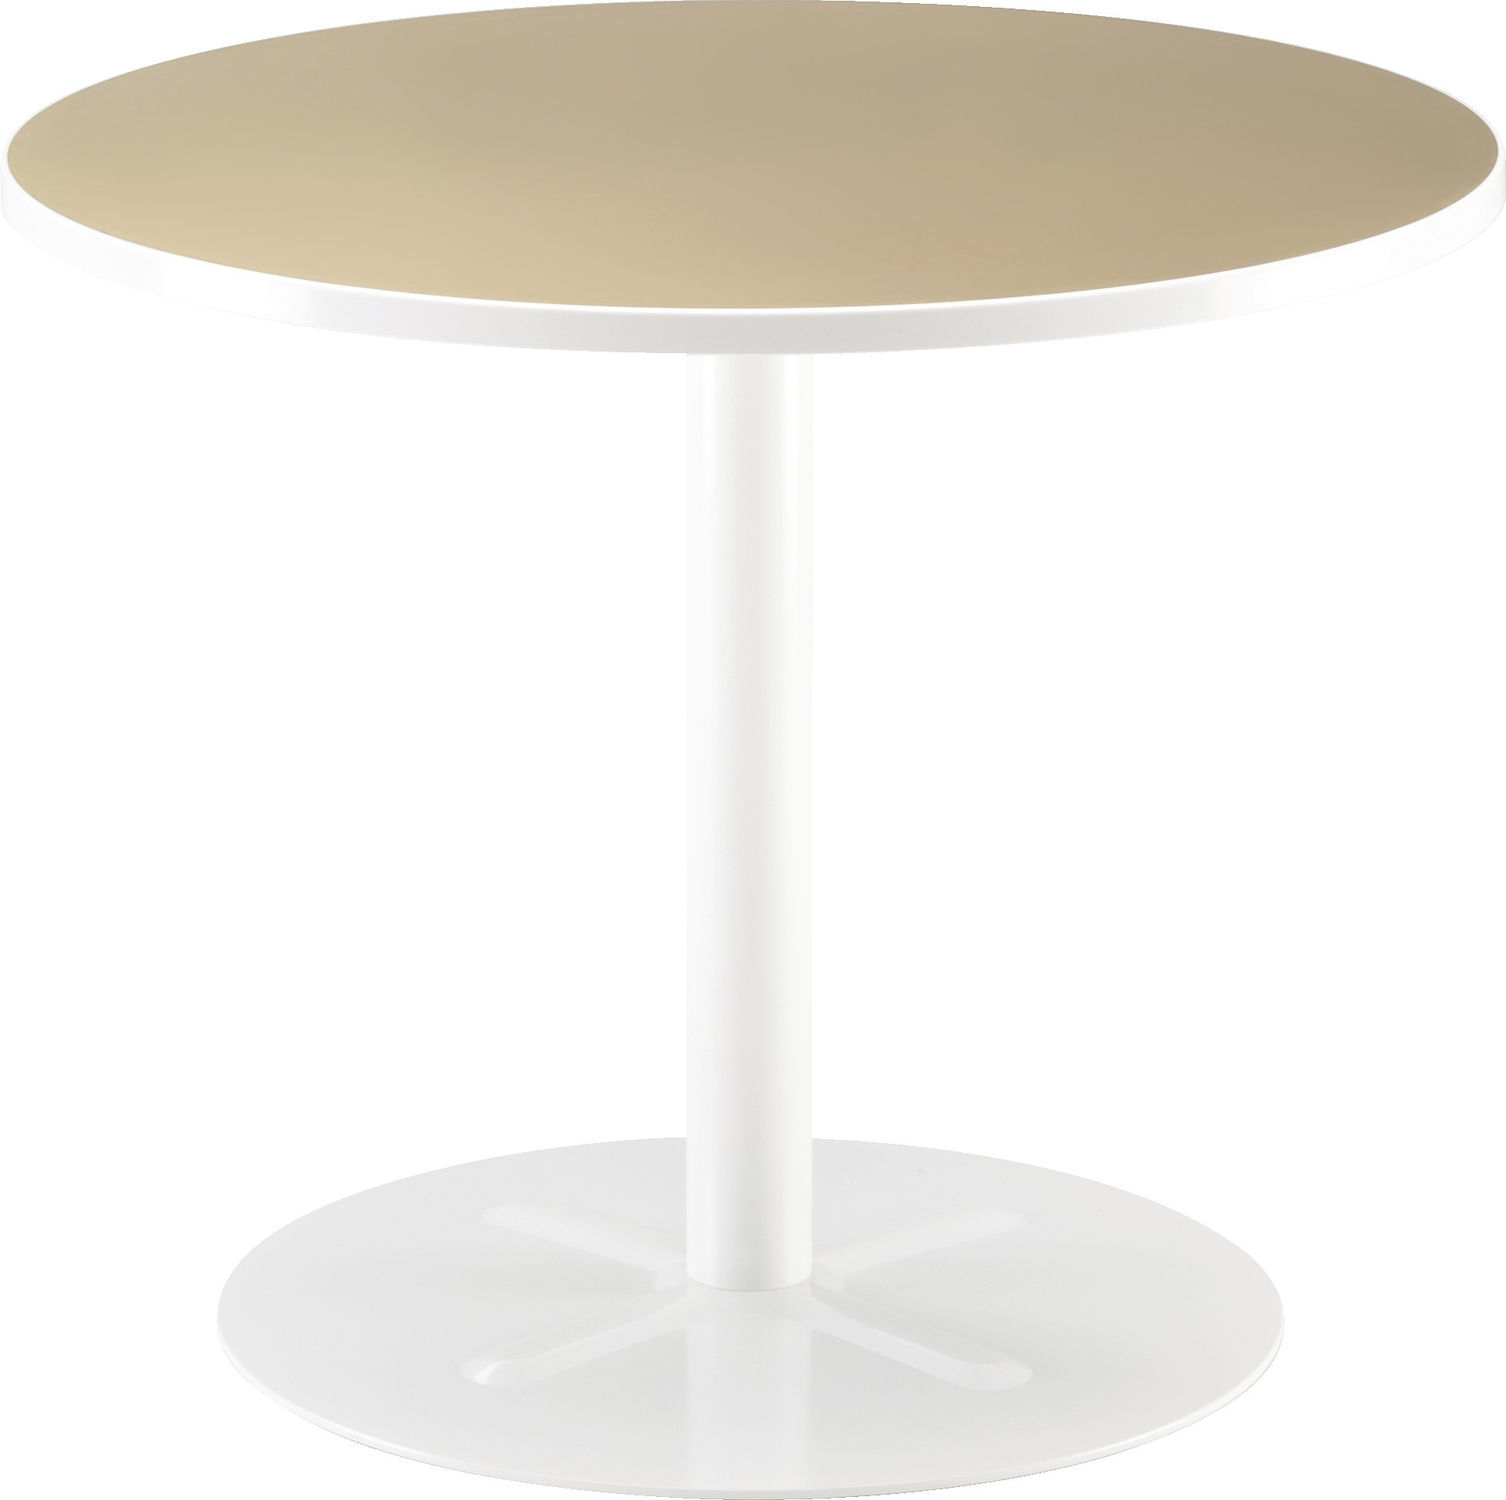 Contemporary Pedestal Table / Wooden / Round / Square   OSIO By Tapio  Anttila